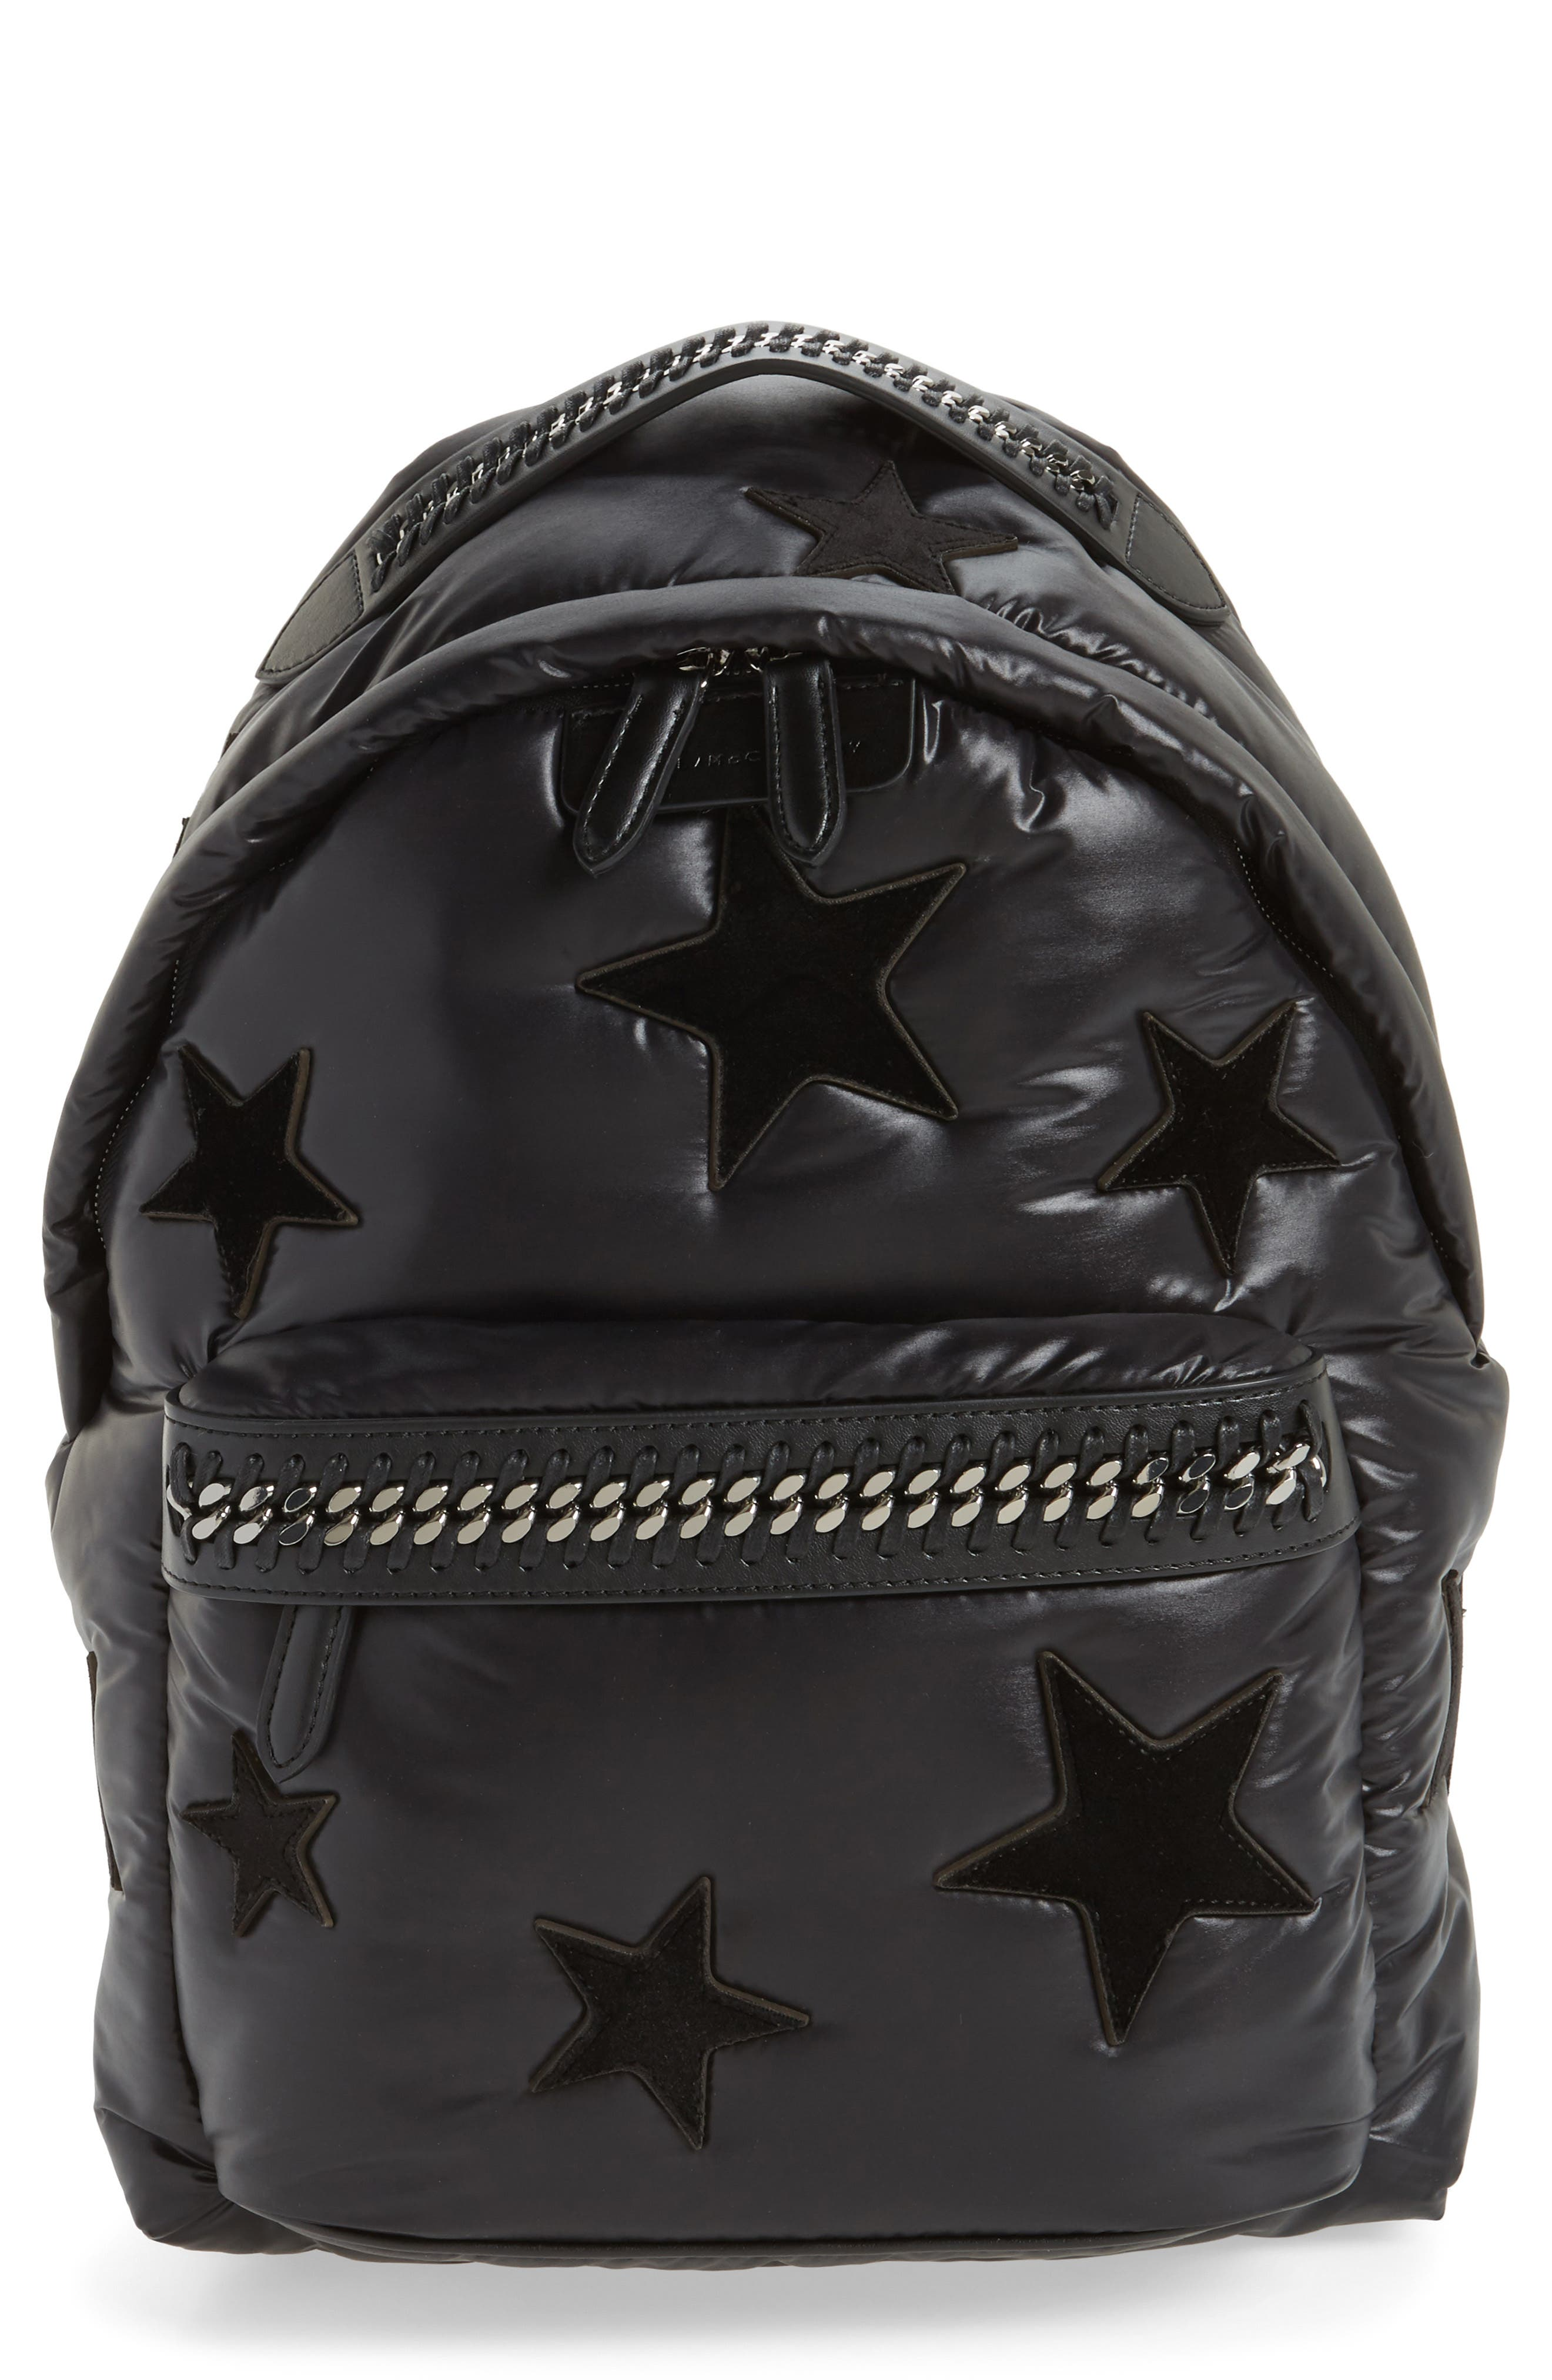 STELLA MCCARTNEY Falabella Go All Over Stars Backpack